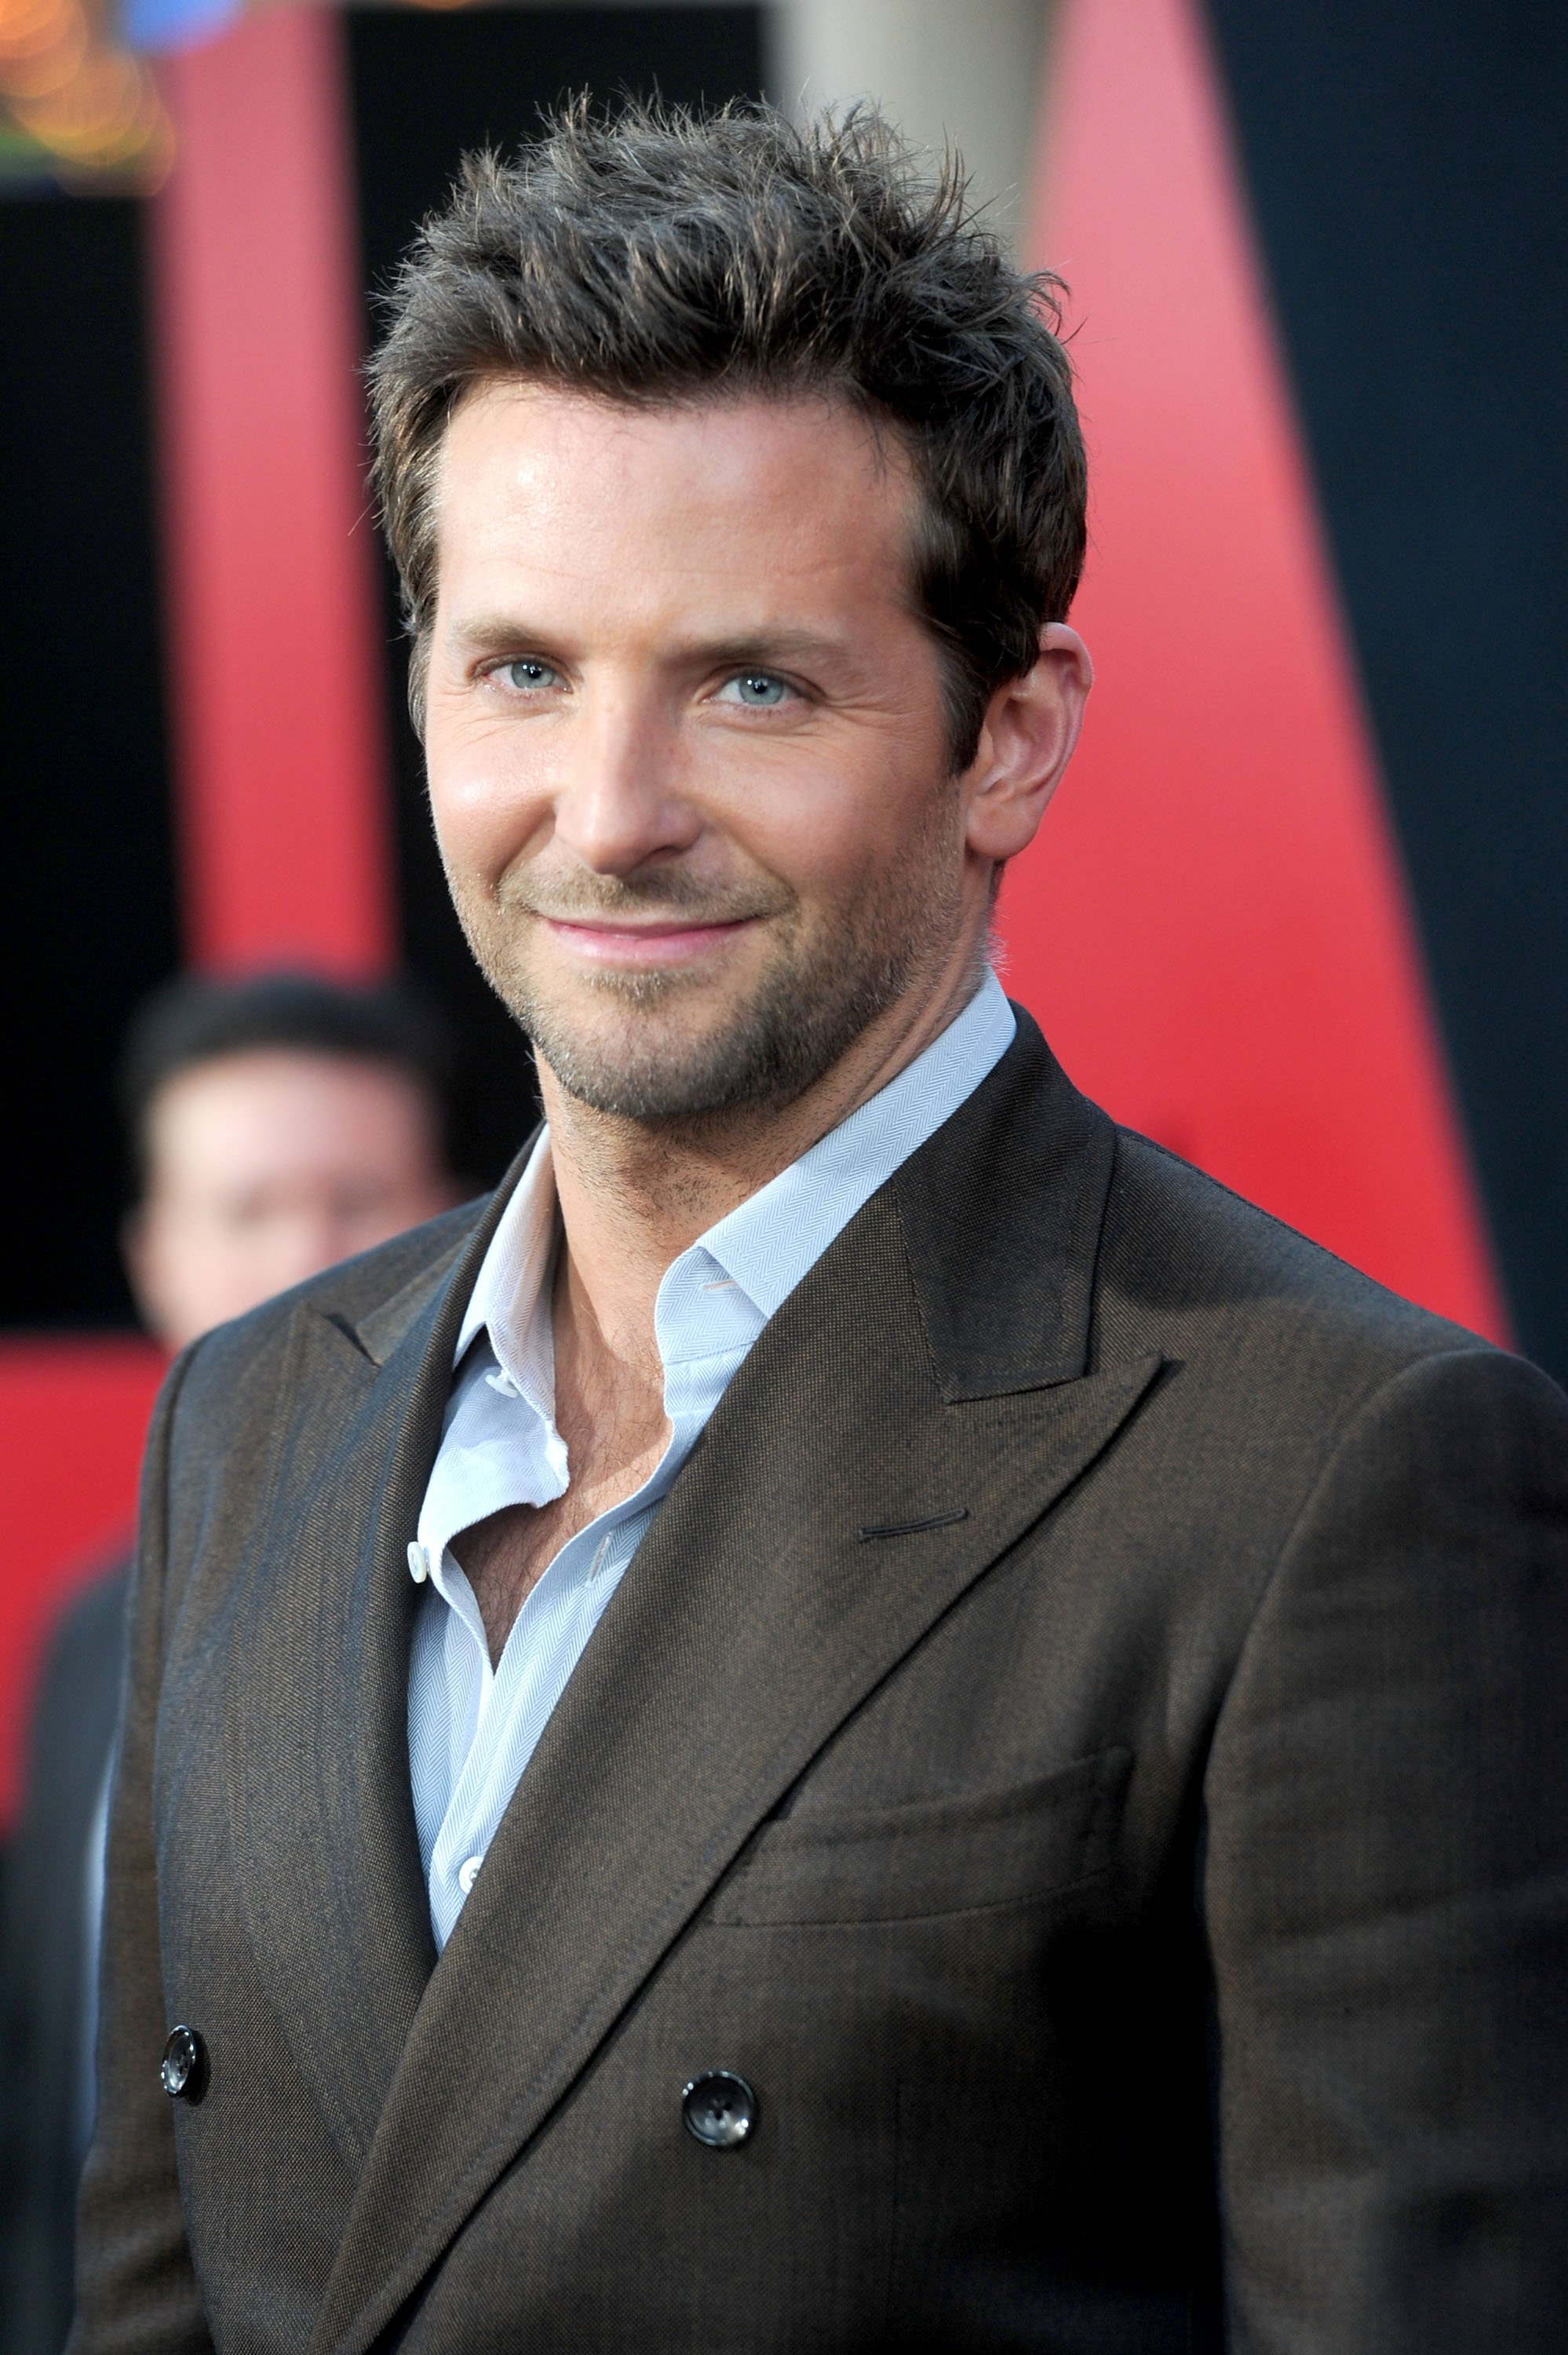 Bradley Cooper on May 19, 2011 in Los Angeles, California | Photo: Getty Images